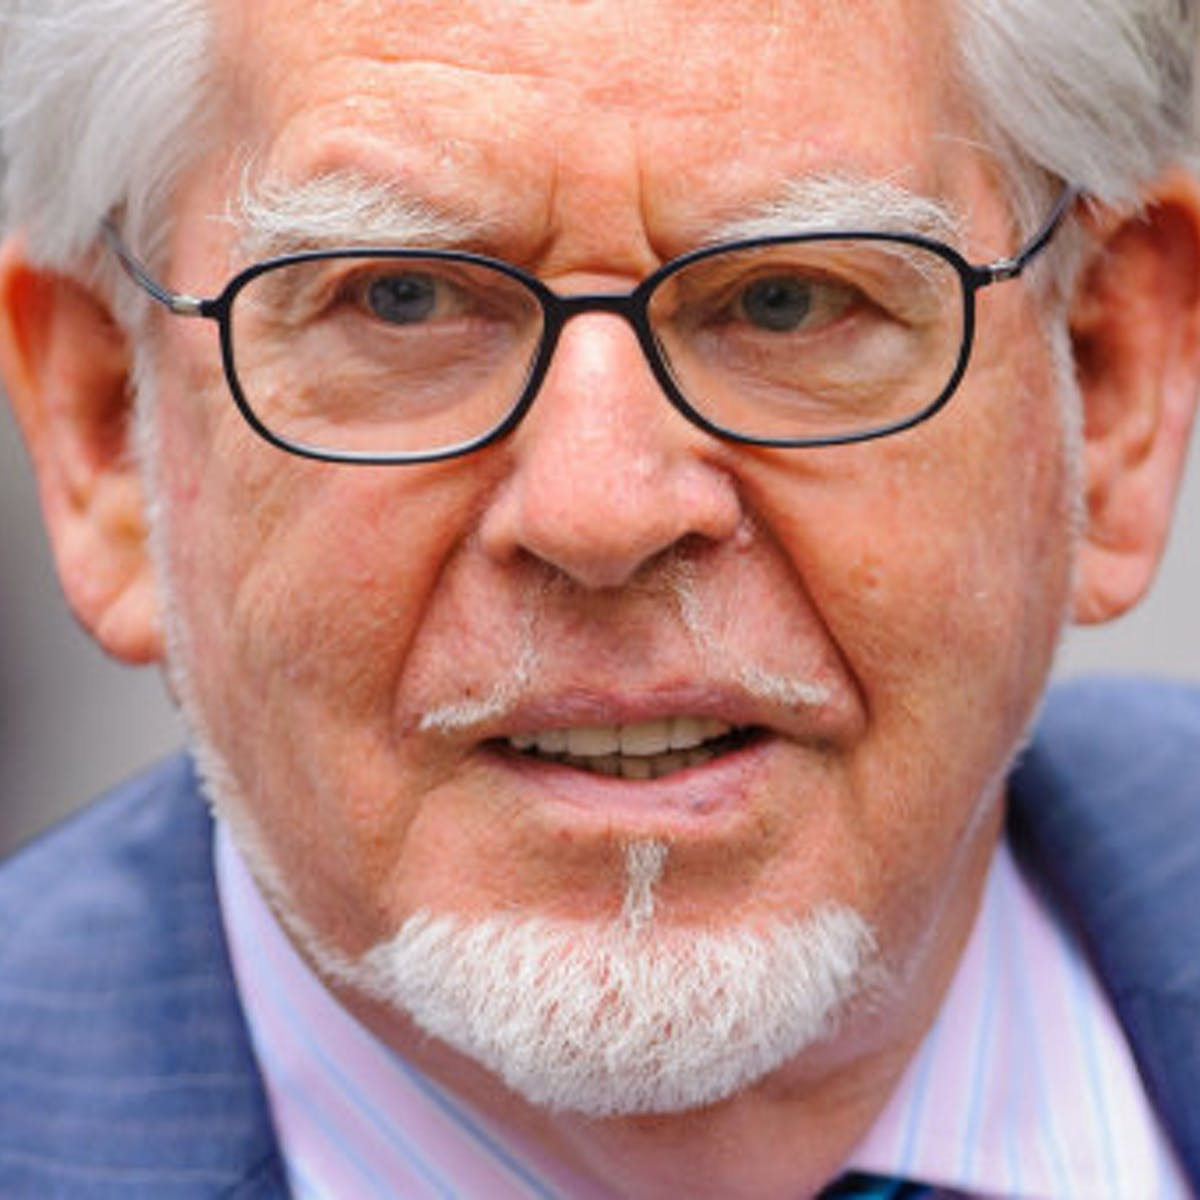 Rolf Harris guilty: but what has Operation Yewtree really taught ...